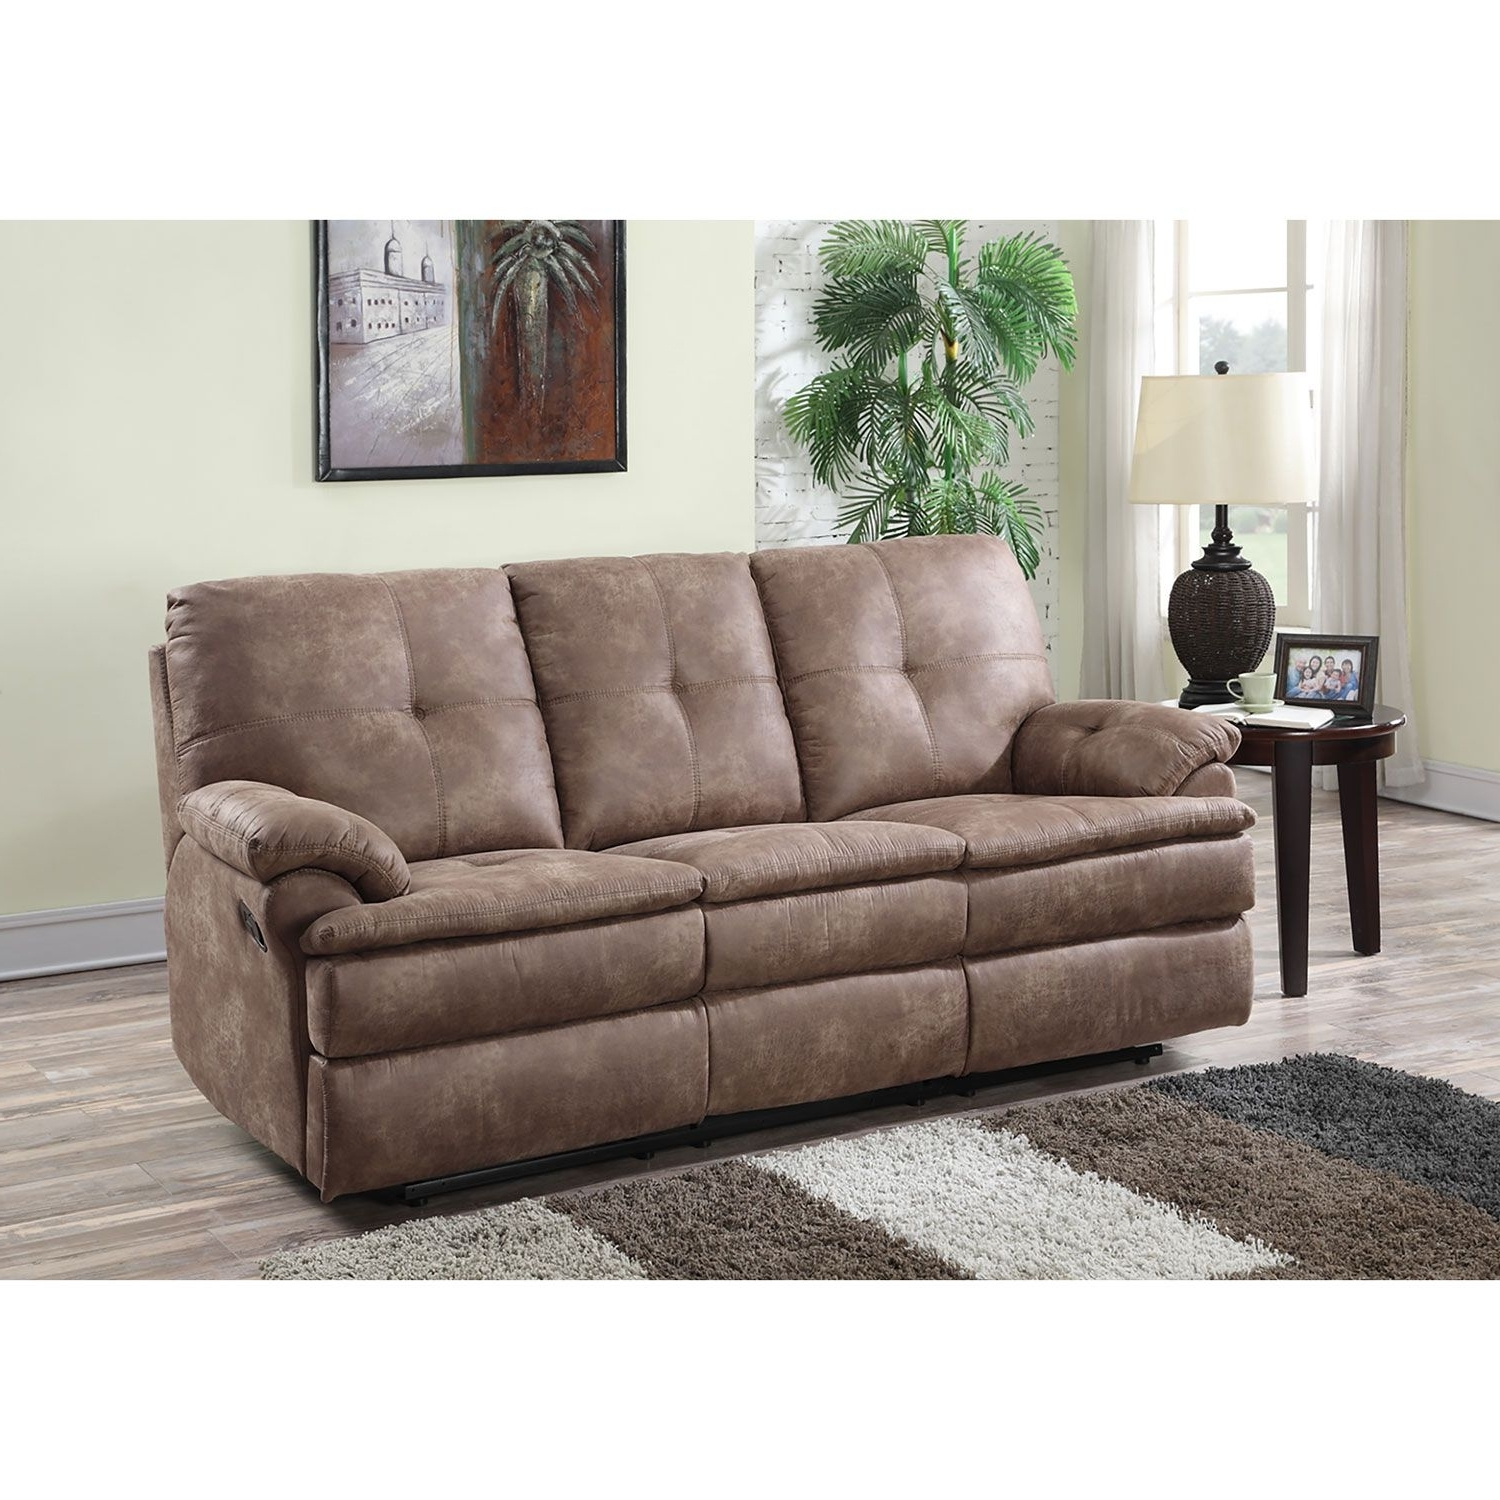 Sofa : Two Seater Fabric Recliner Sofa Fabric Reclining Sofa And Inside Fashionable Sams Club Sectional Sofas (View 9 of 20)